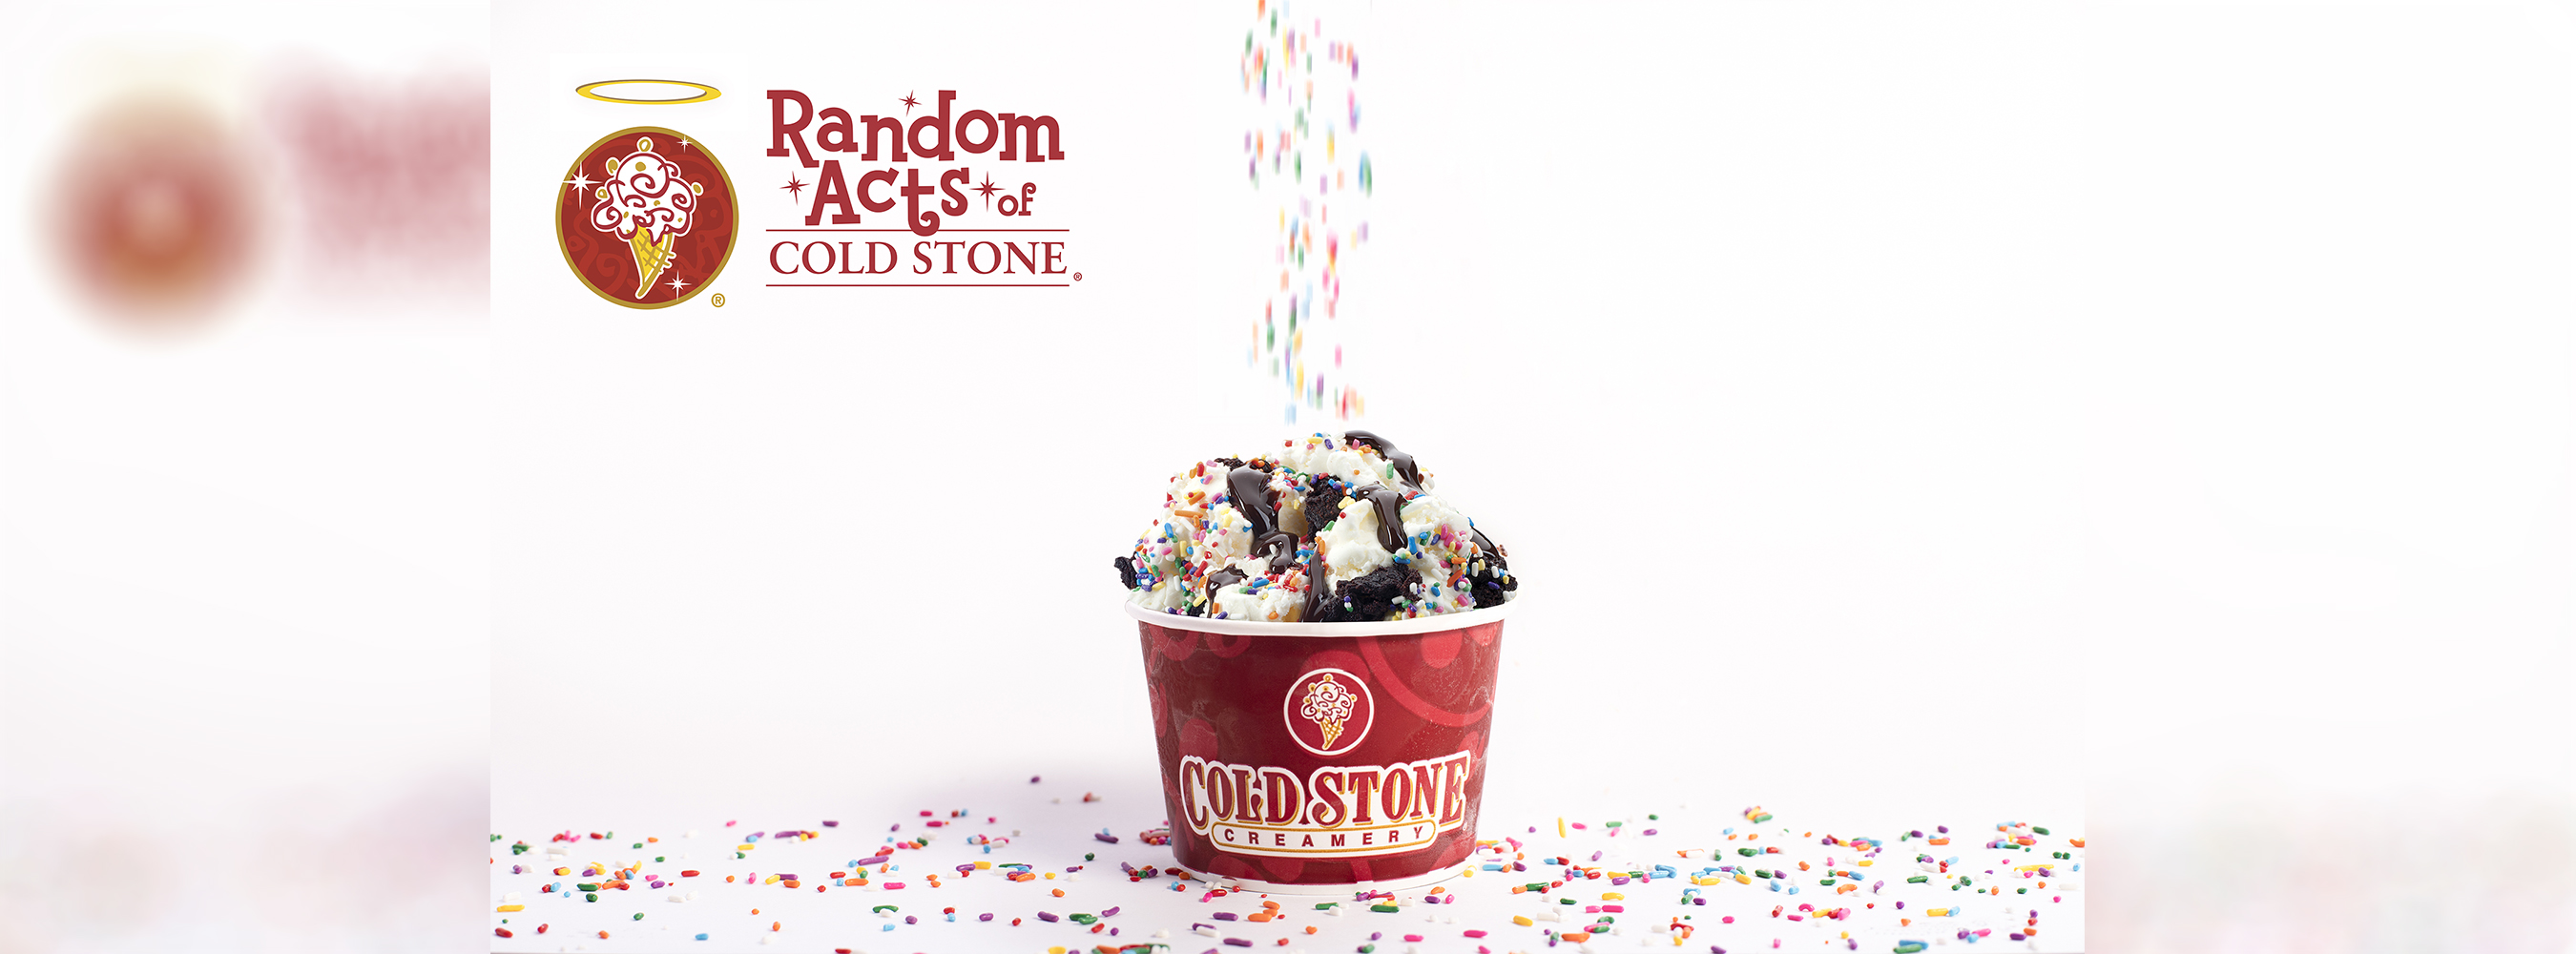 Cold Stone Creamery Celebrates World Kindn...